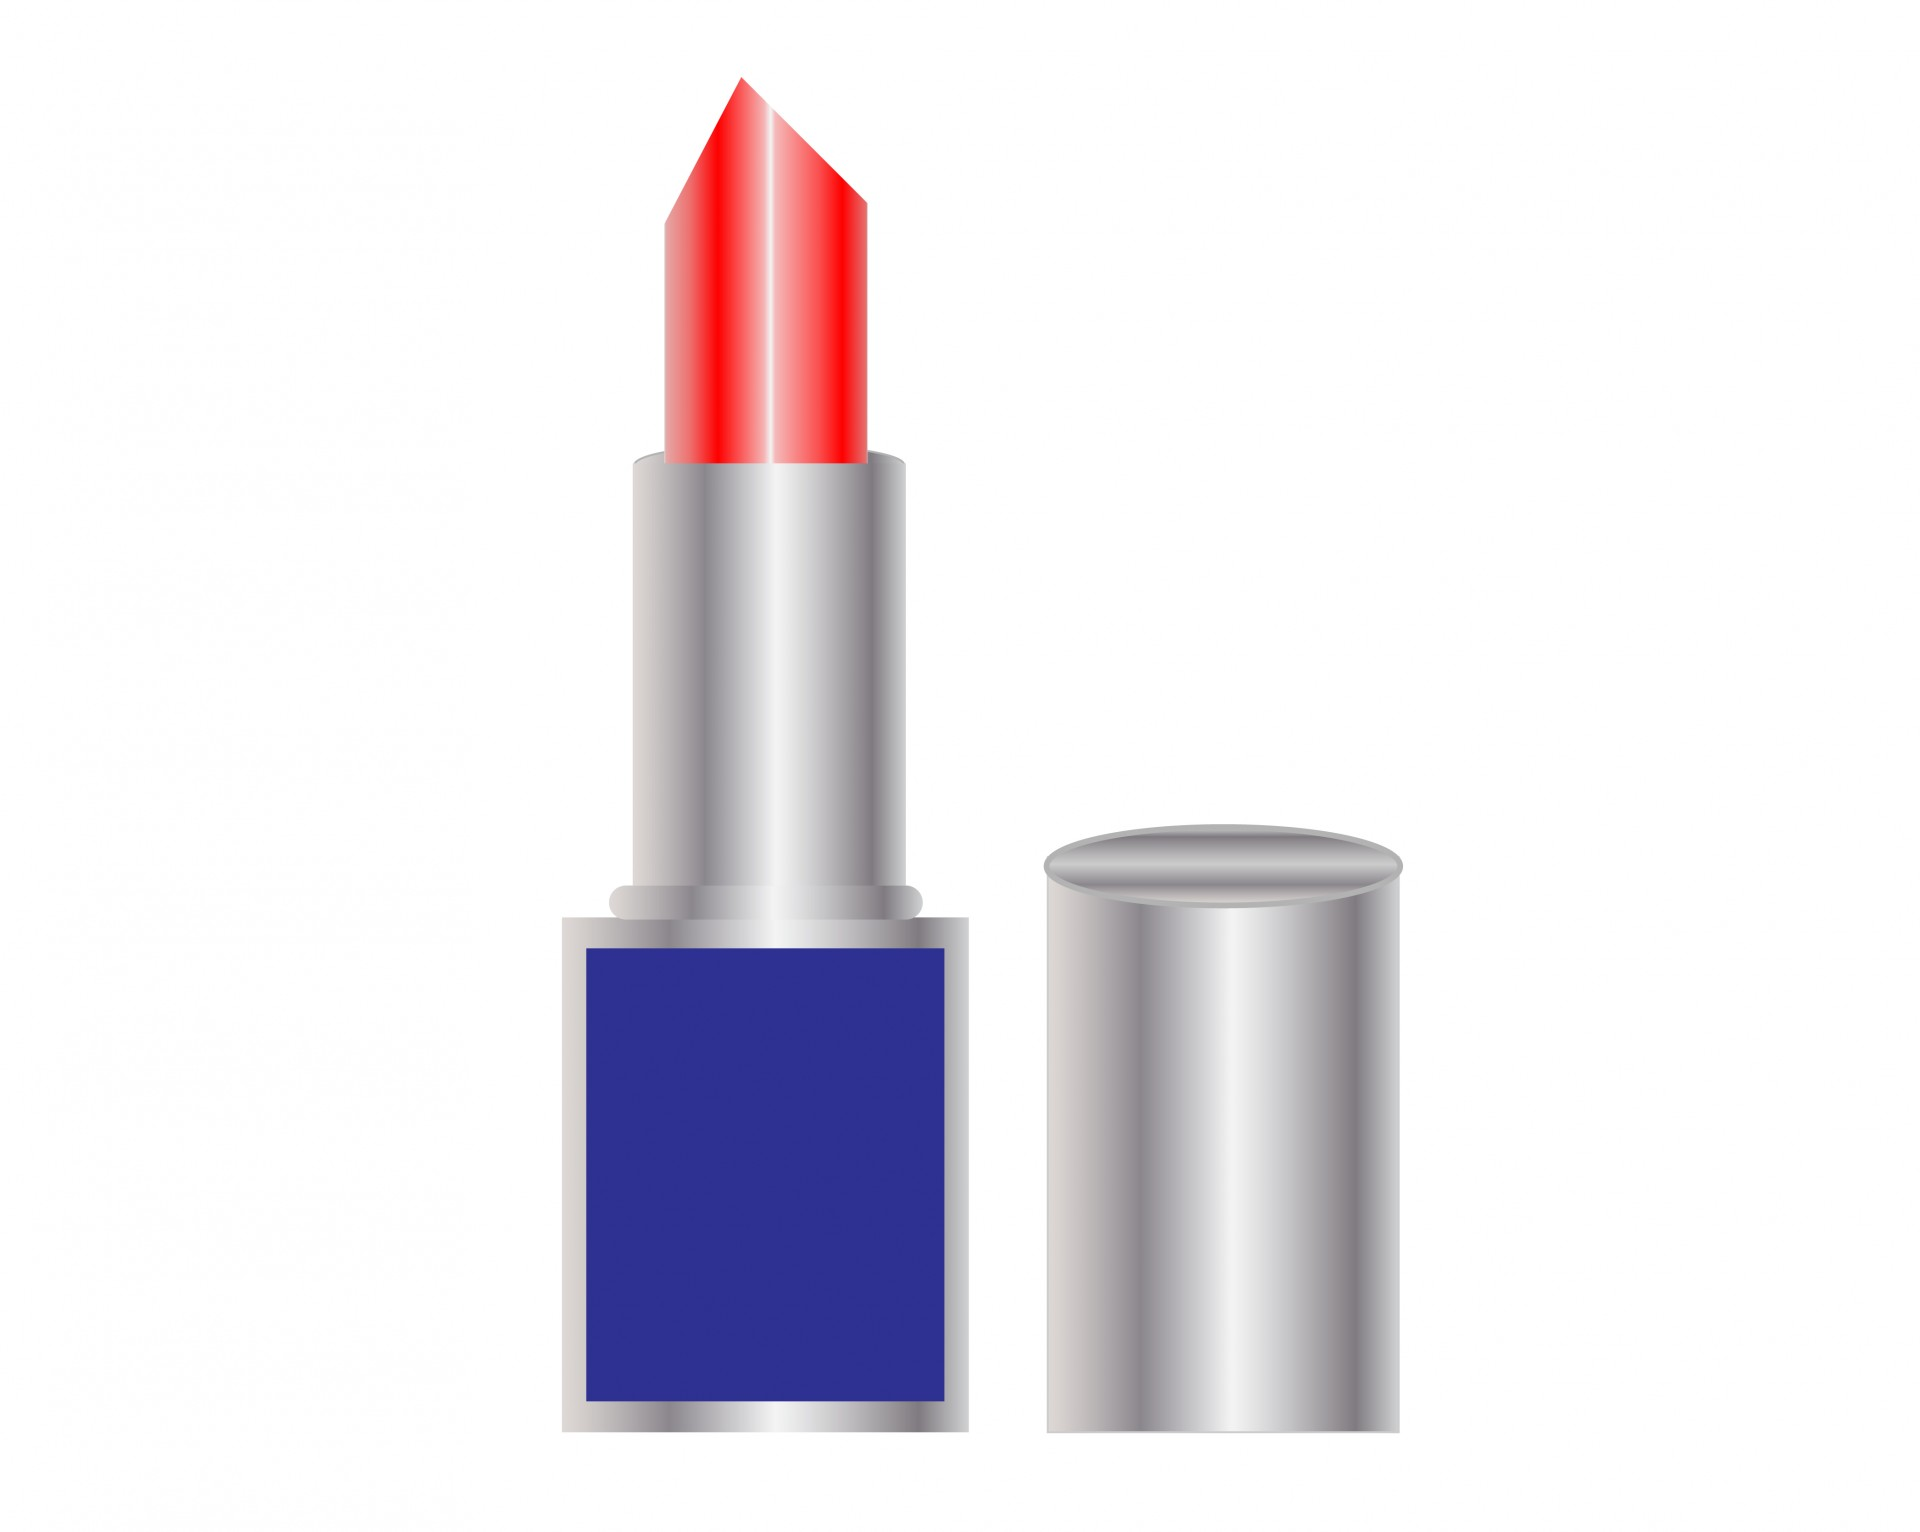 Lipstick clipart. Free stock photo public